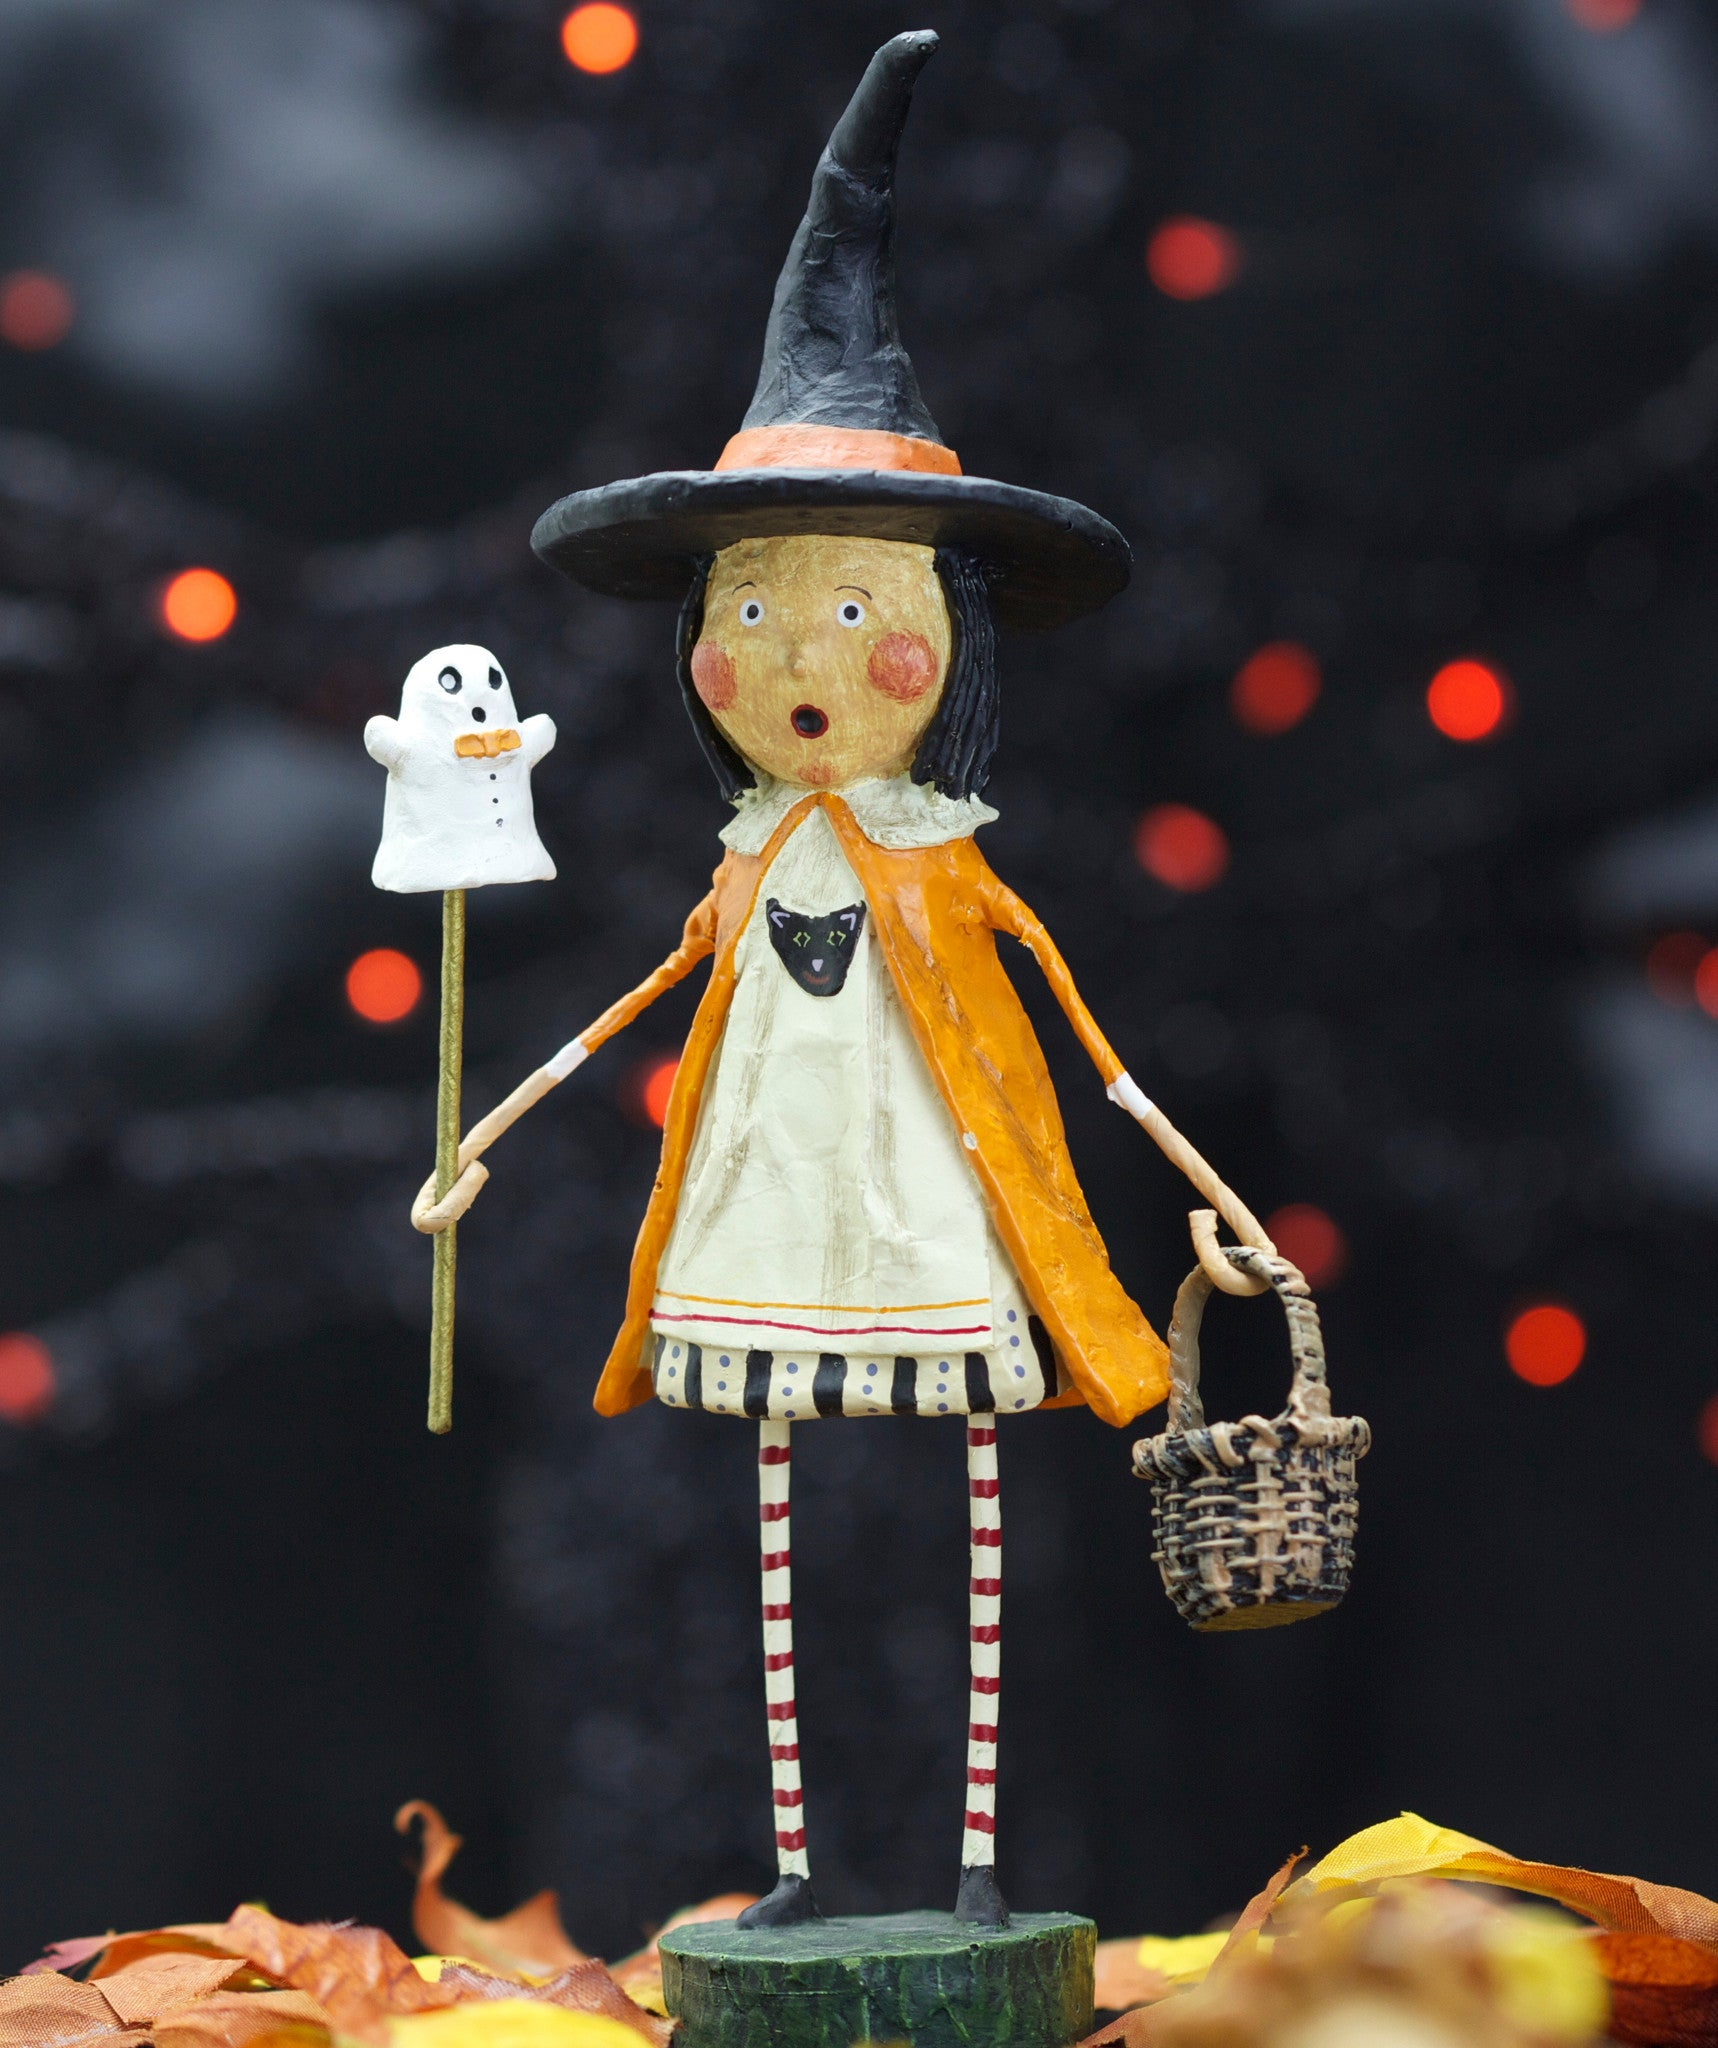 Enchanted Eliza Witch - Lori Mitchell Halloween Figurine